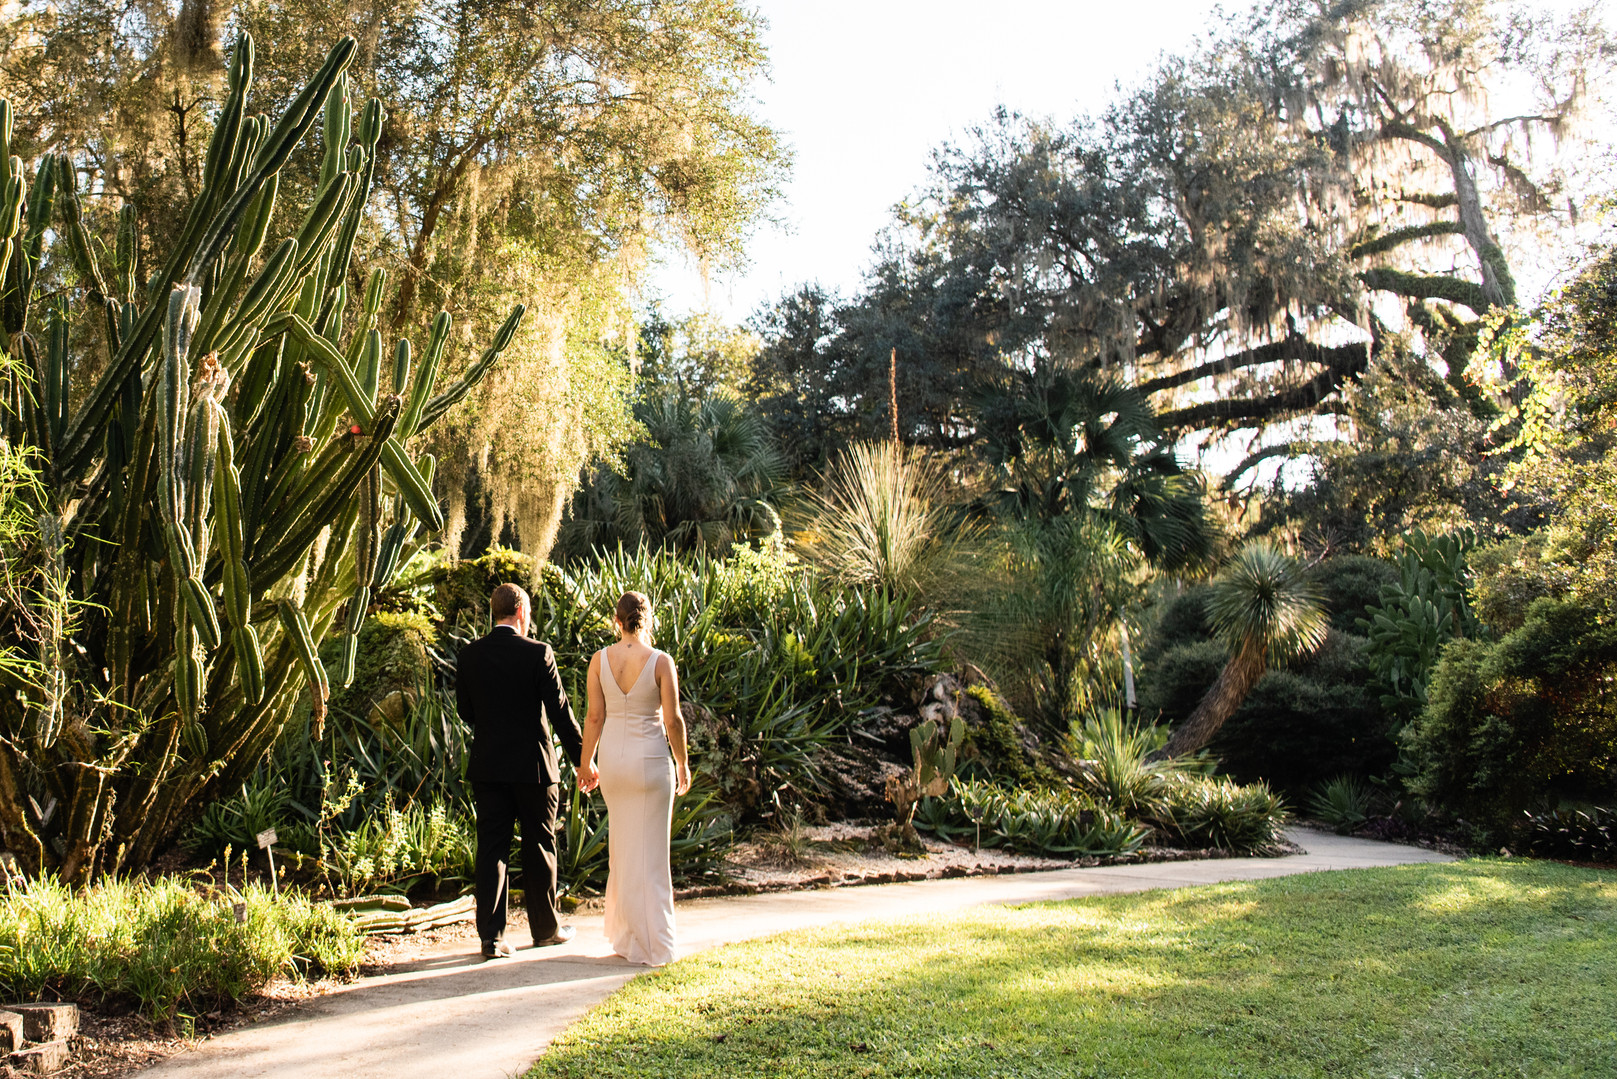 CWP Photography - Kanapaha Botanical Gardens Elopement